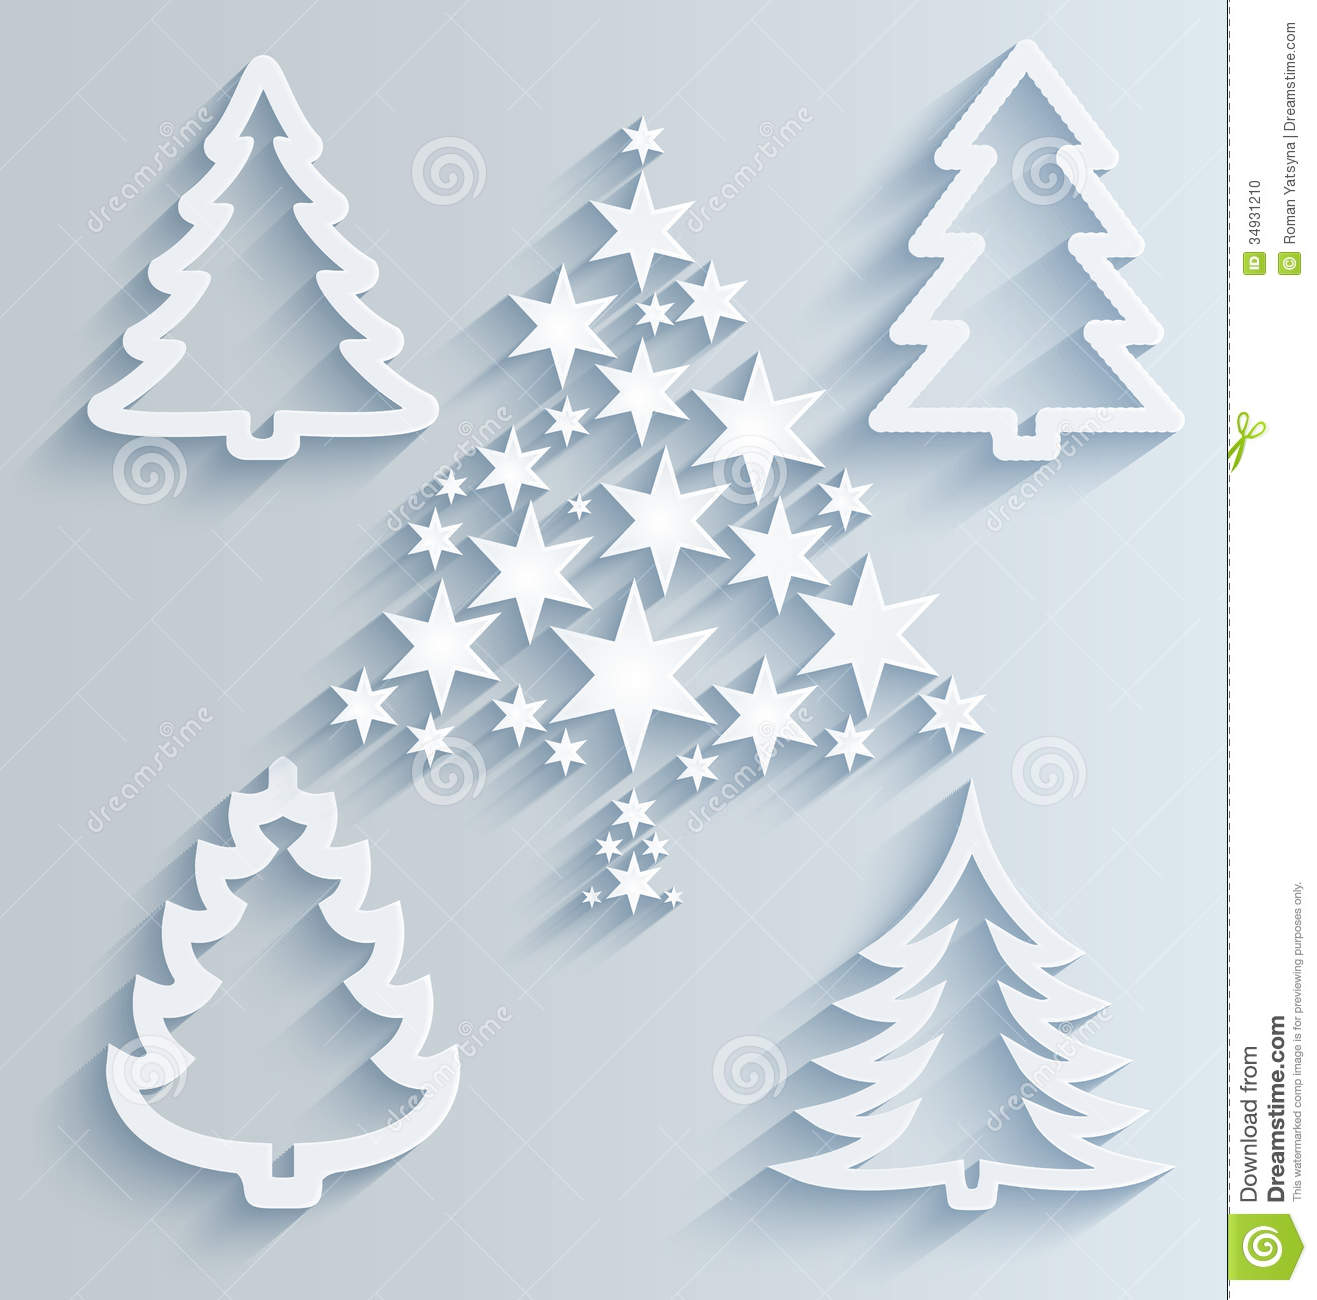 Images Of Holiday Decorations christmas trees. paper holiday decorations stock photo - image